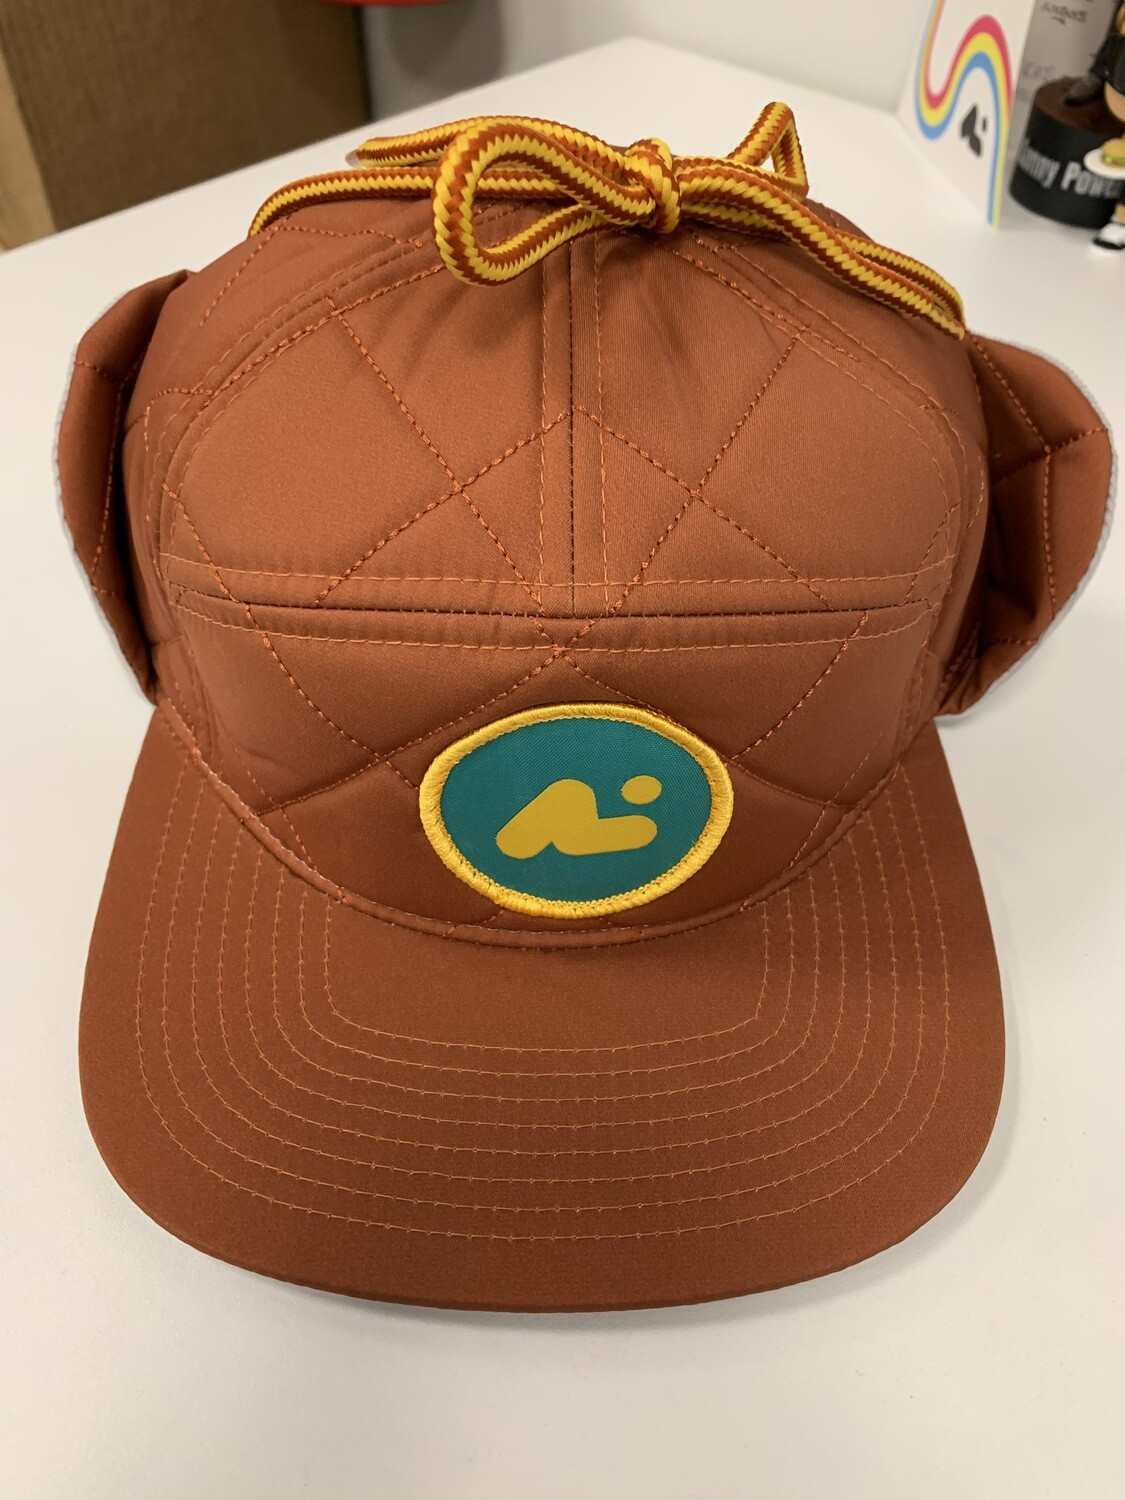 7 panel hat with flaps